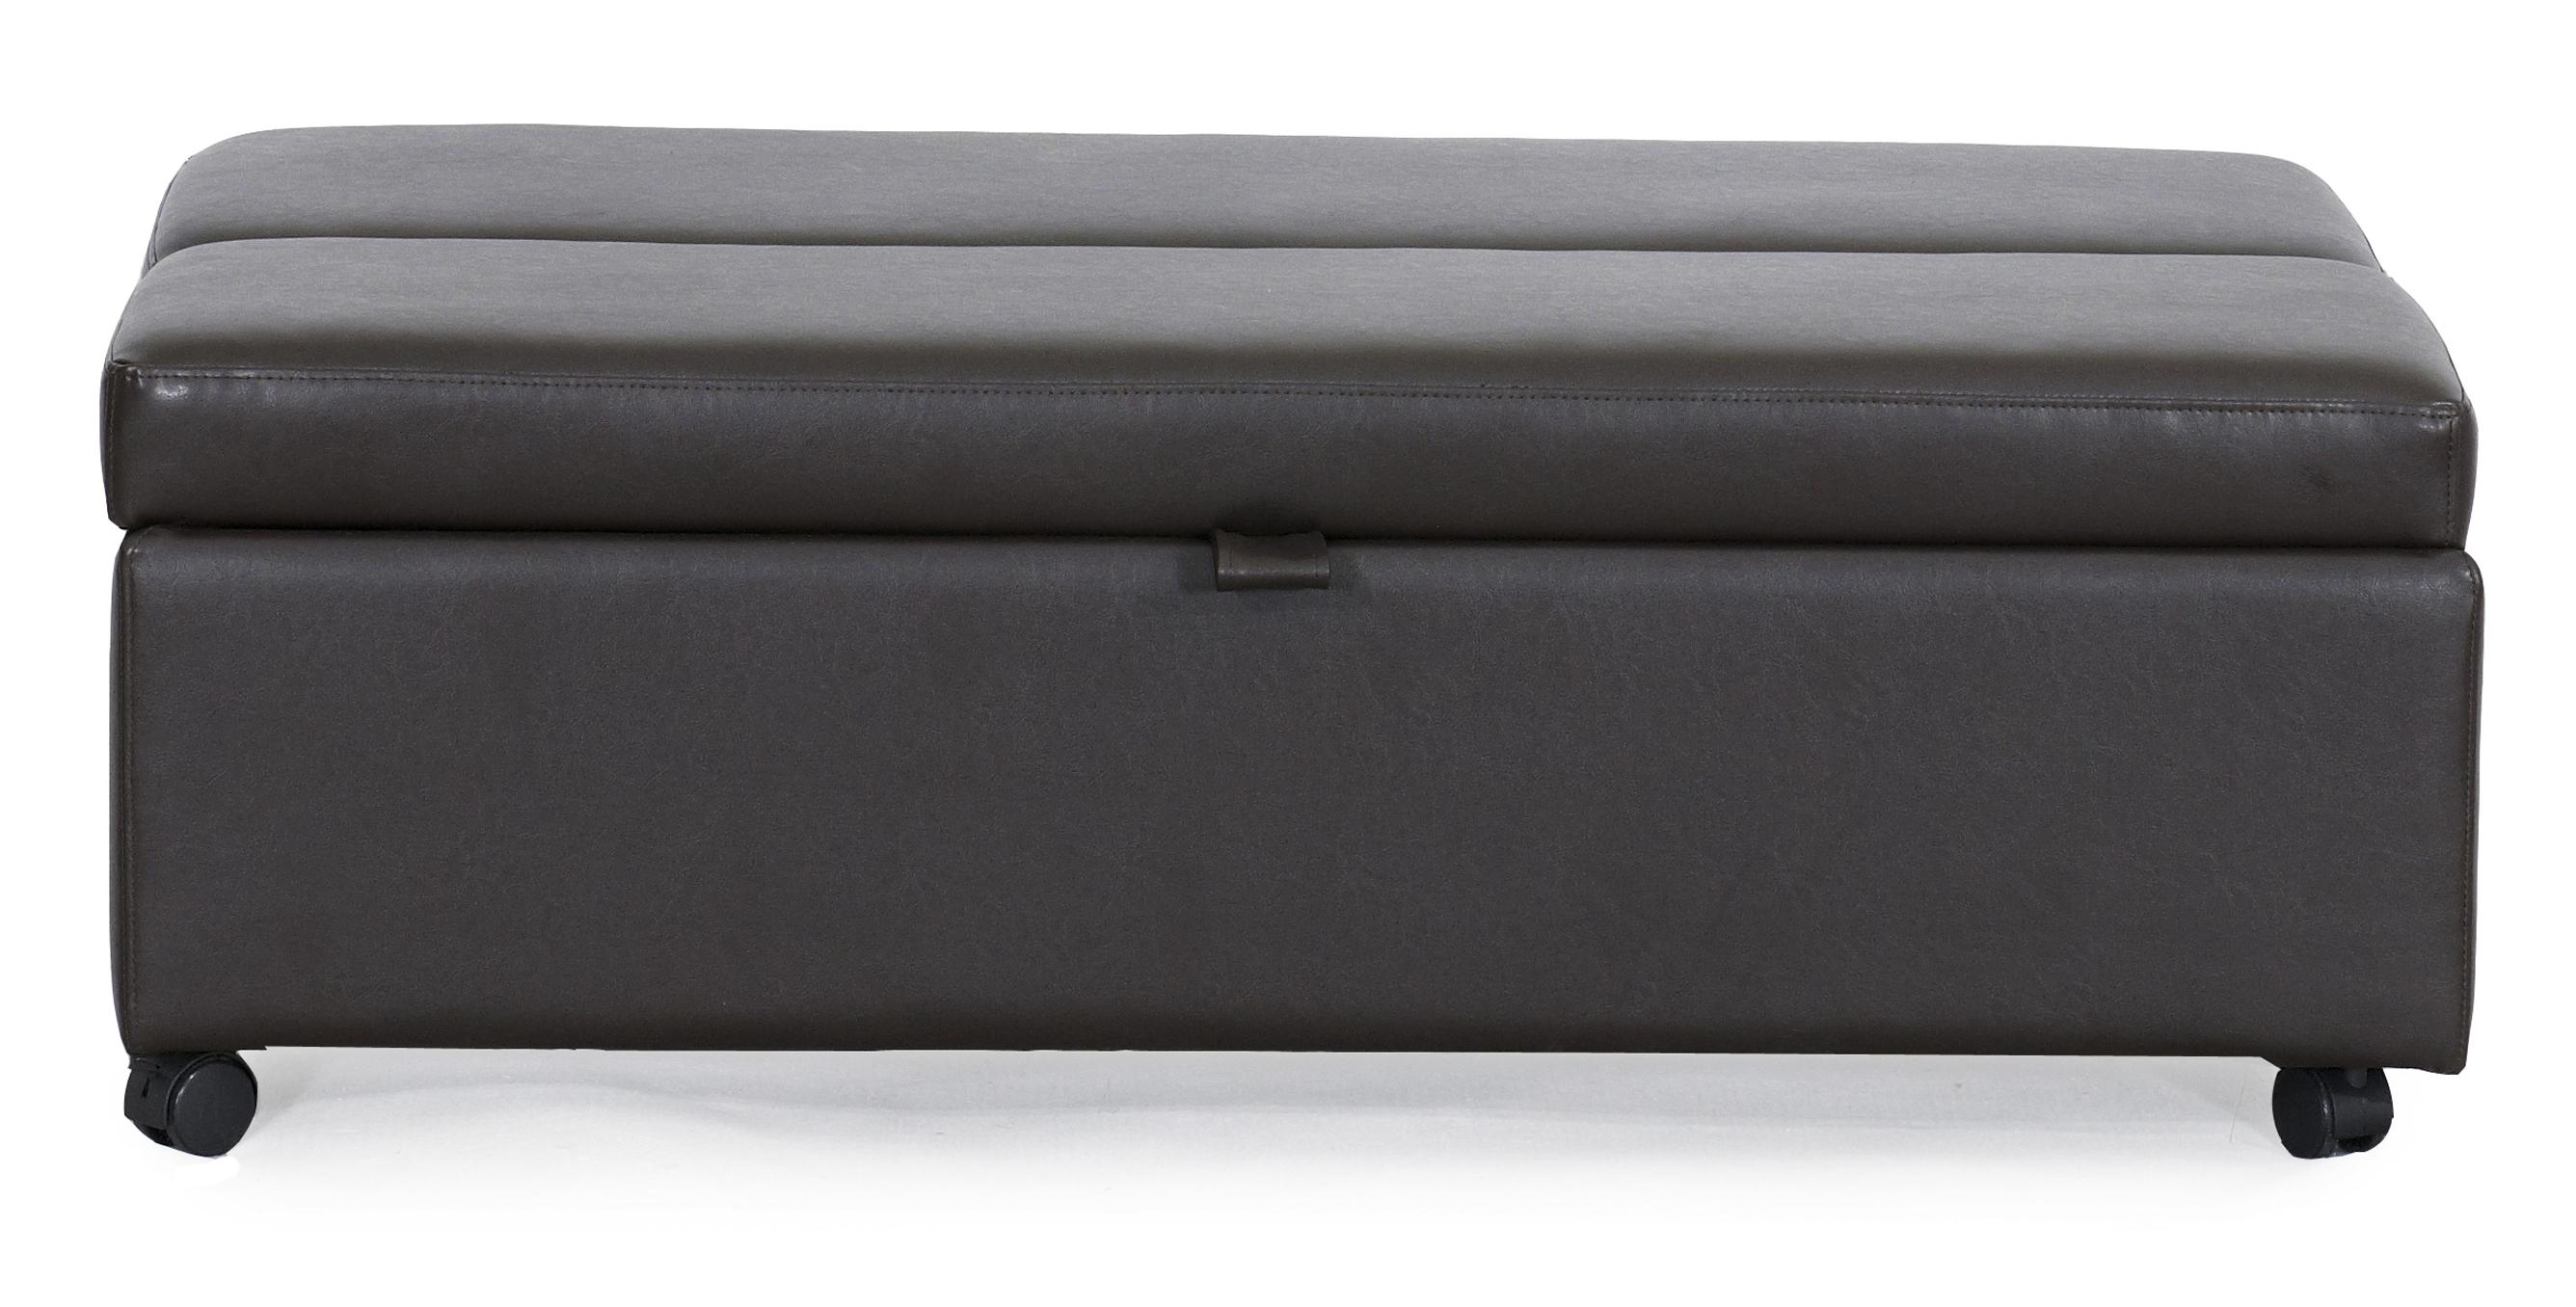 Synergy Home Furnishings 1036 Casual Ottoman Sleeper with Casters